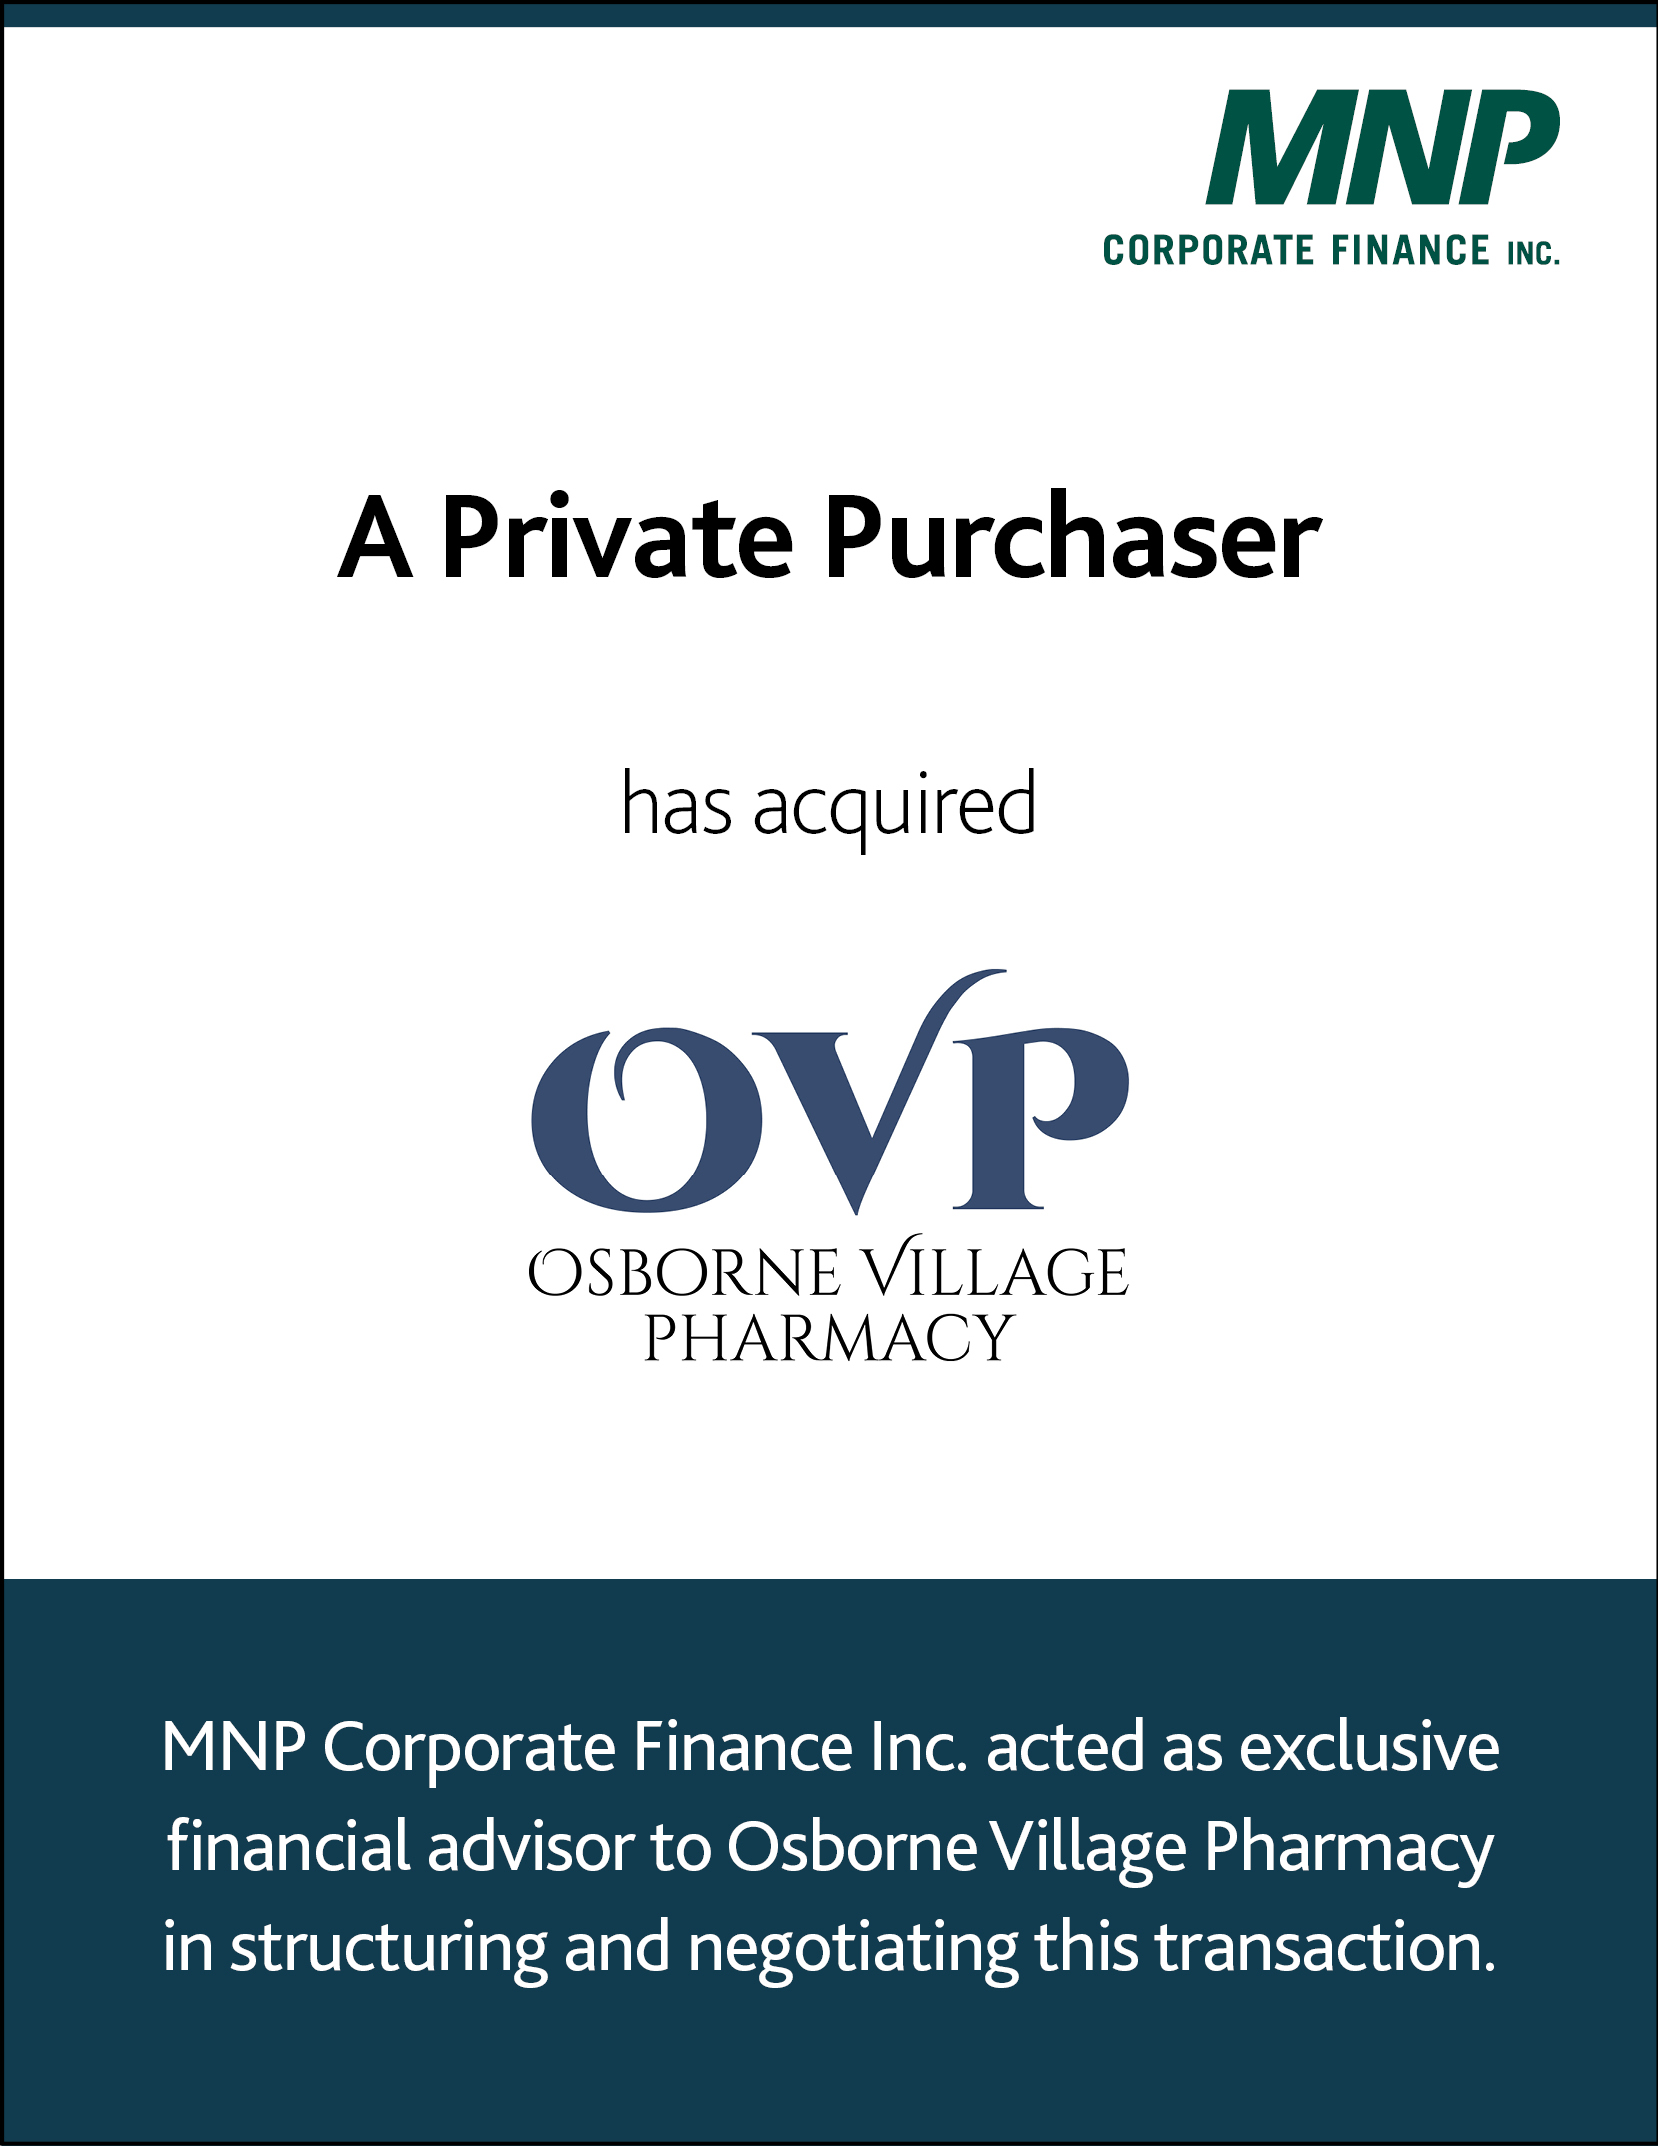 A private purchaser has acquired Osborne Village Pharmacy.